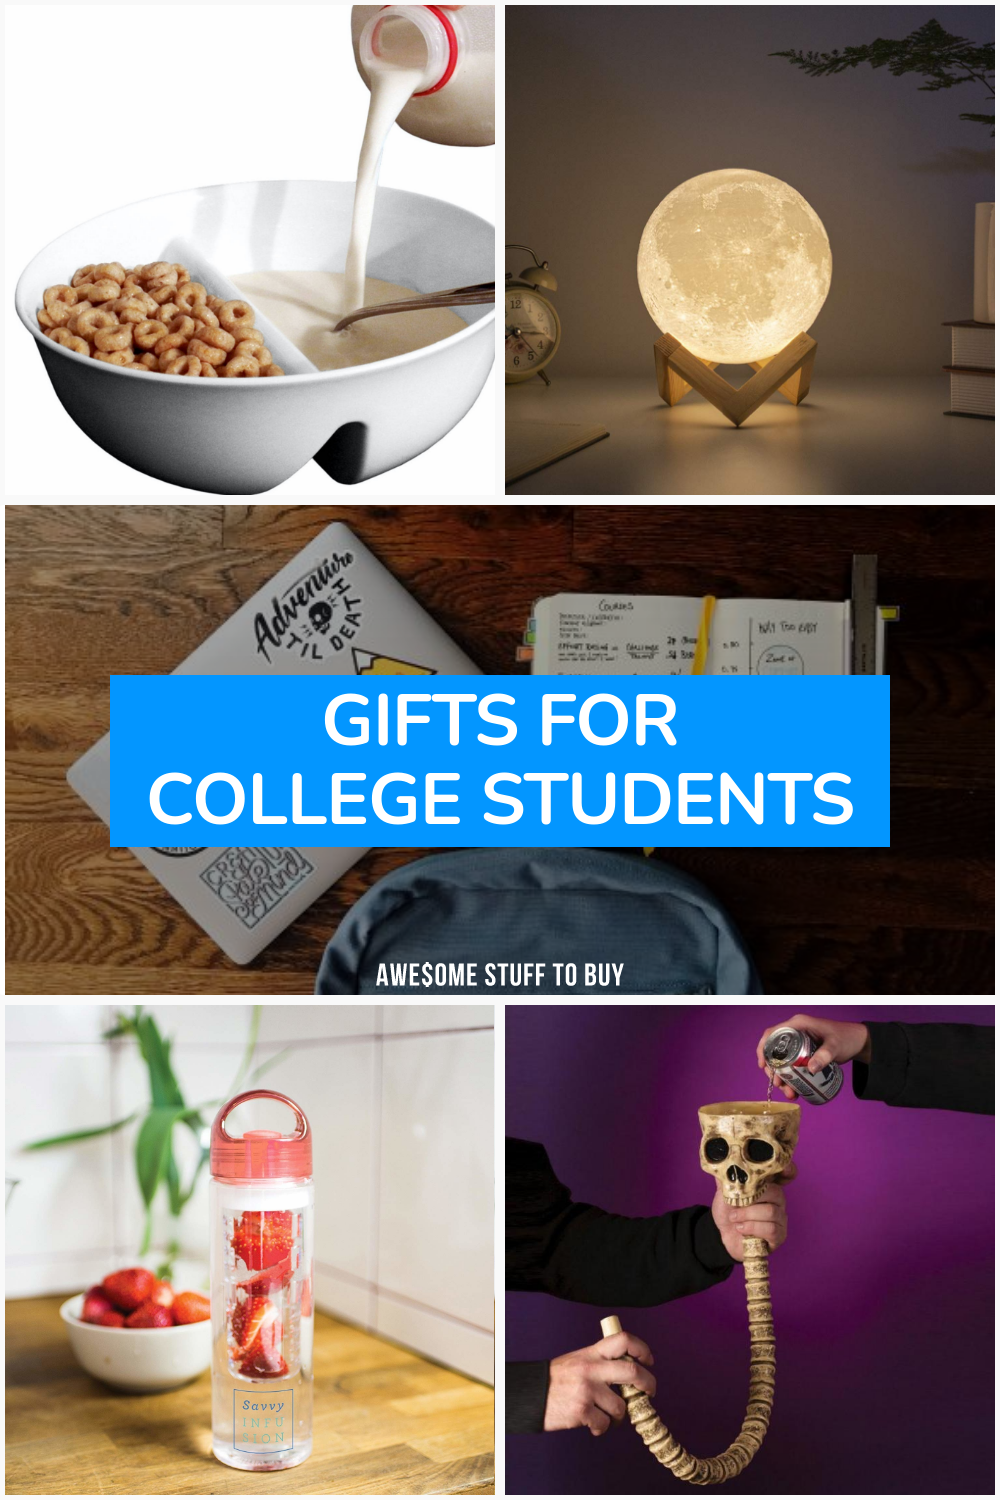 Gifts for College Students // Awesome Stuff to Buy